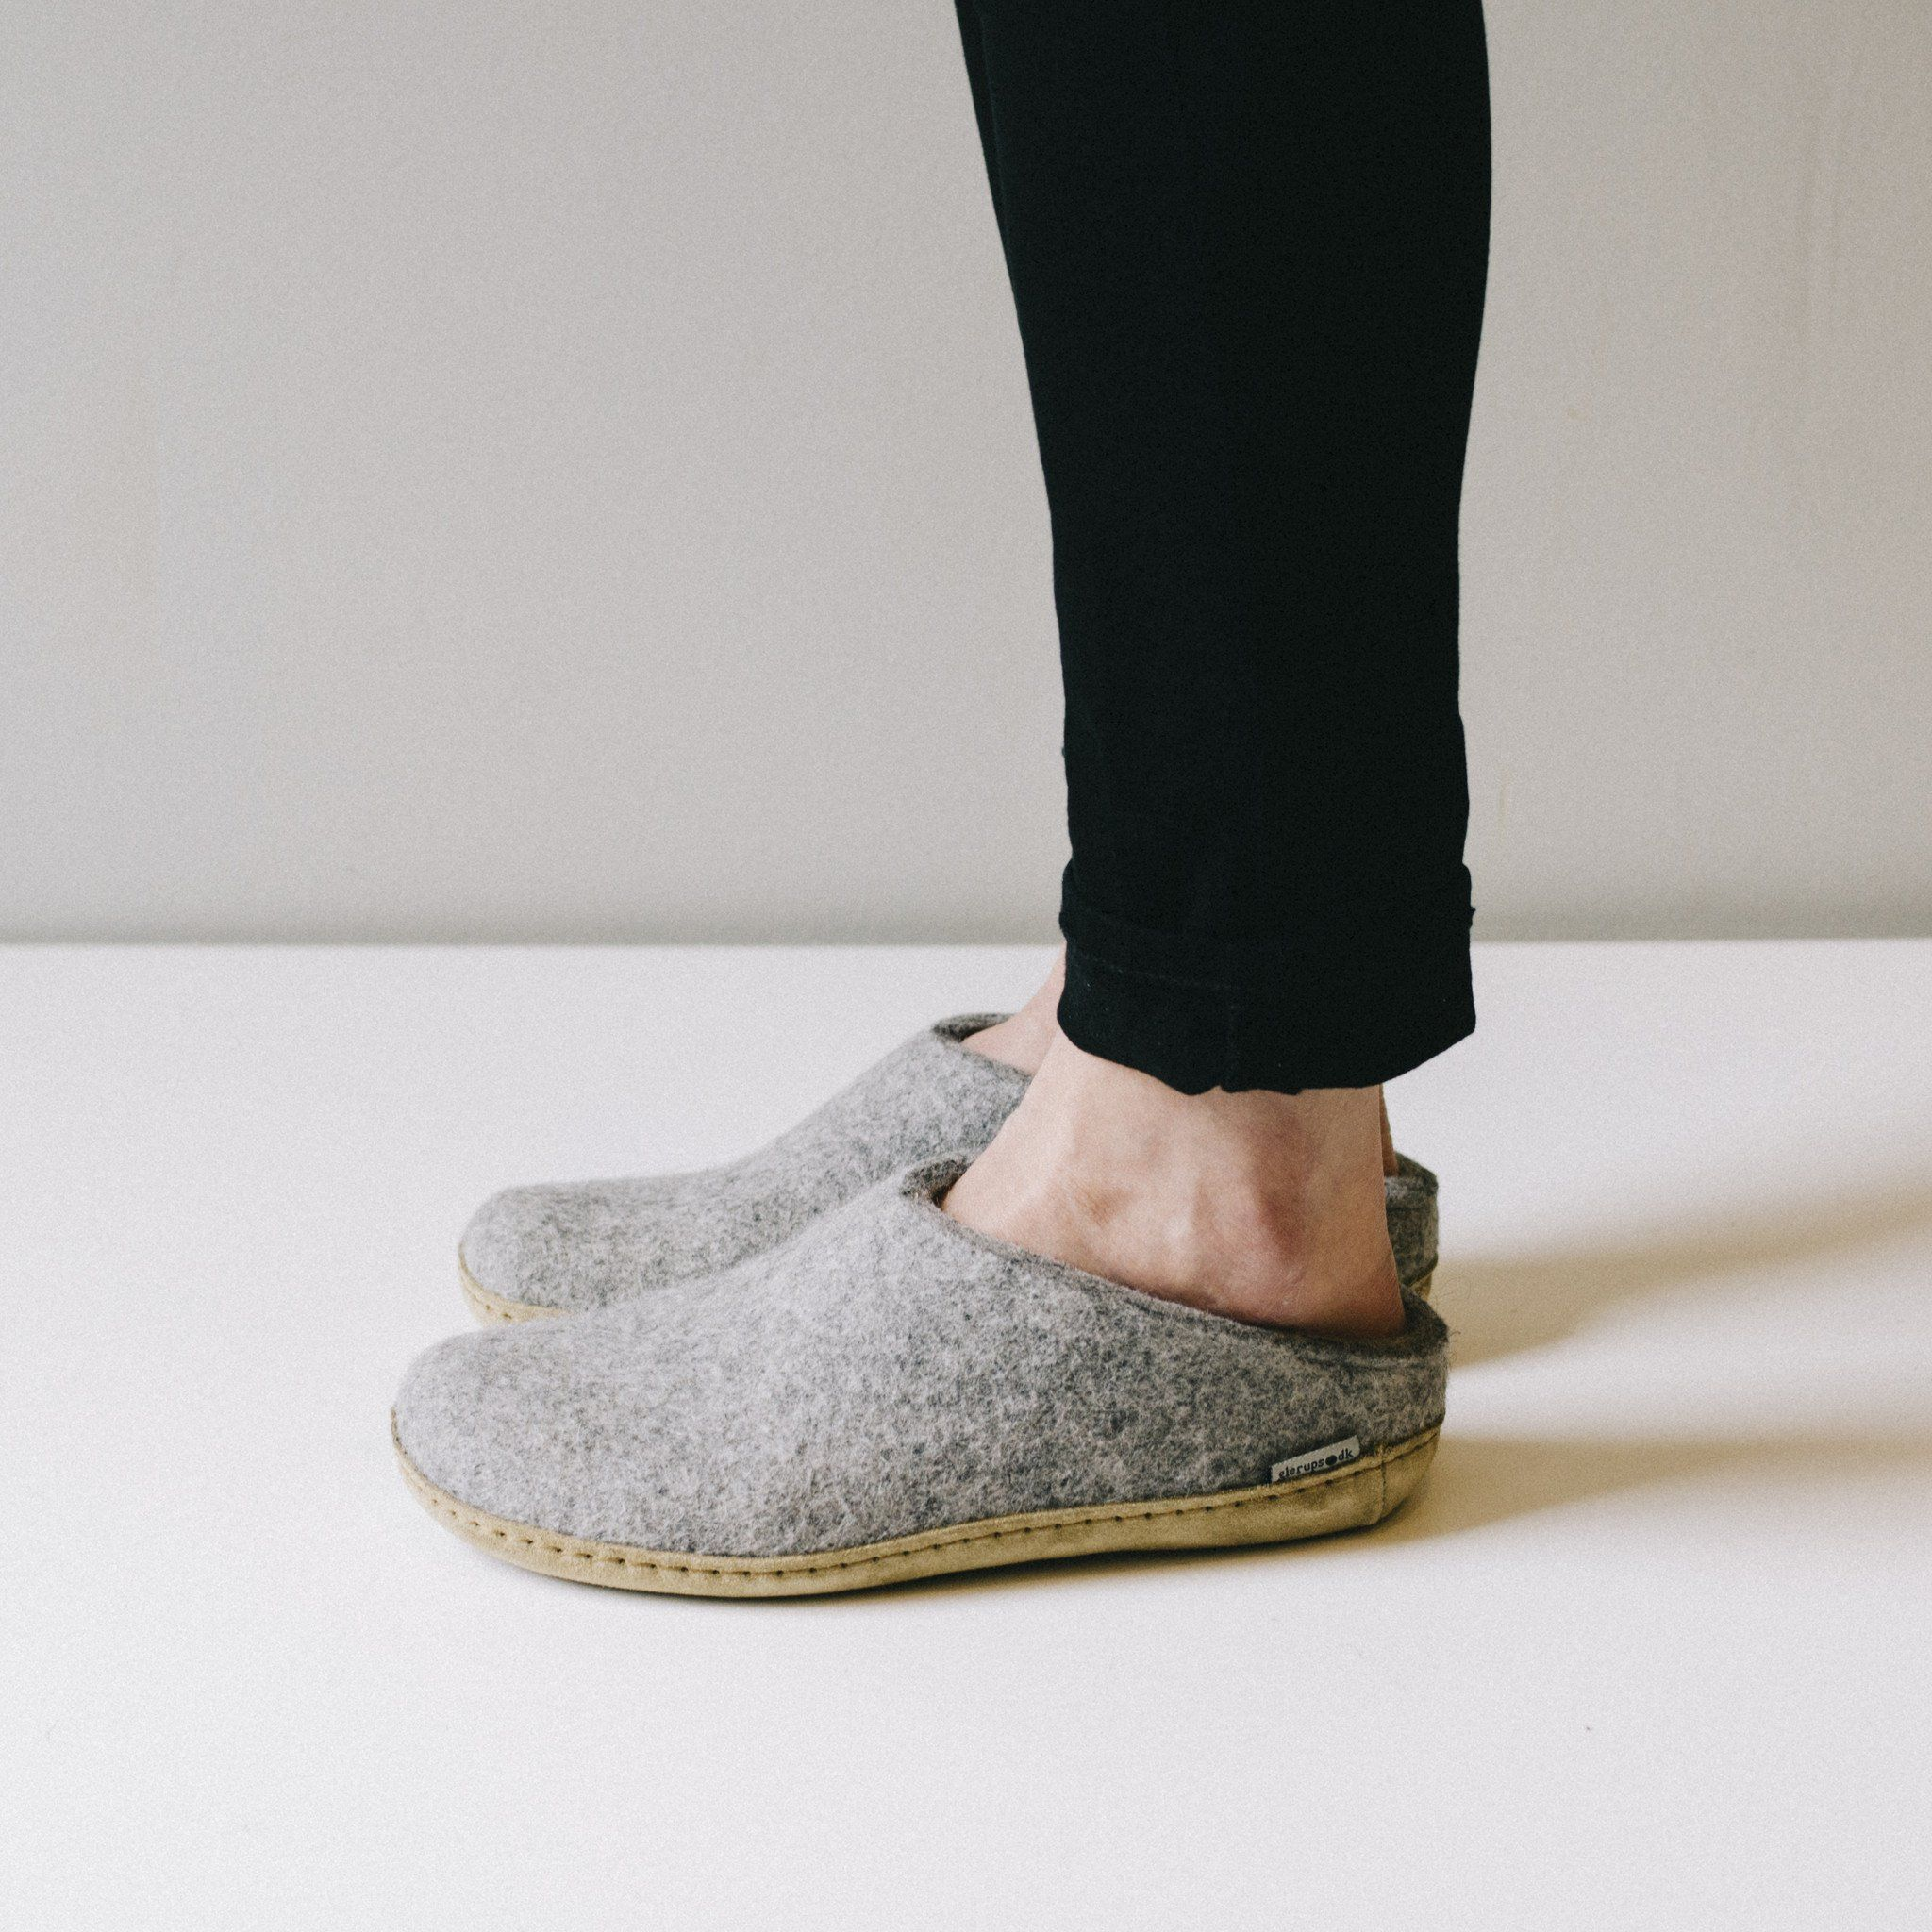 33c4a691c169a3 Our new go-to slipper! Soft